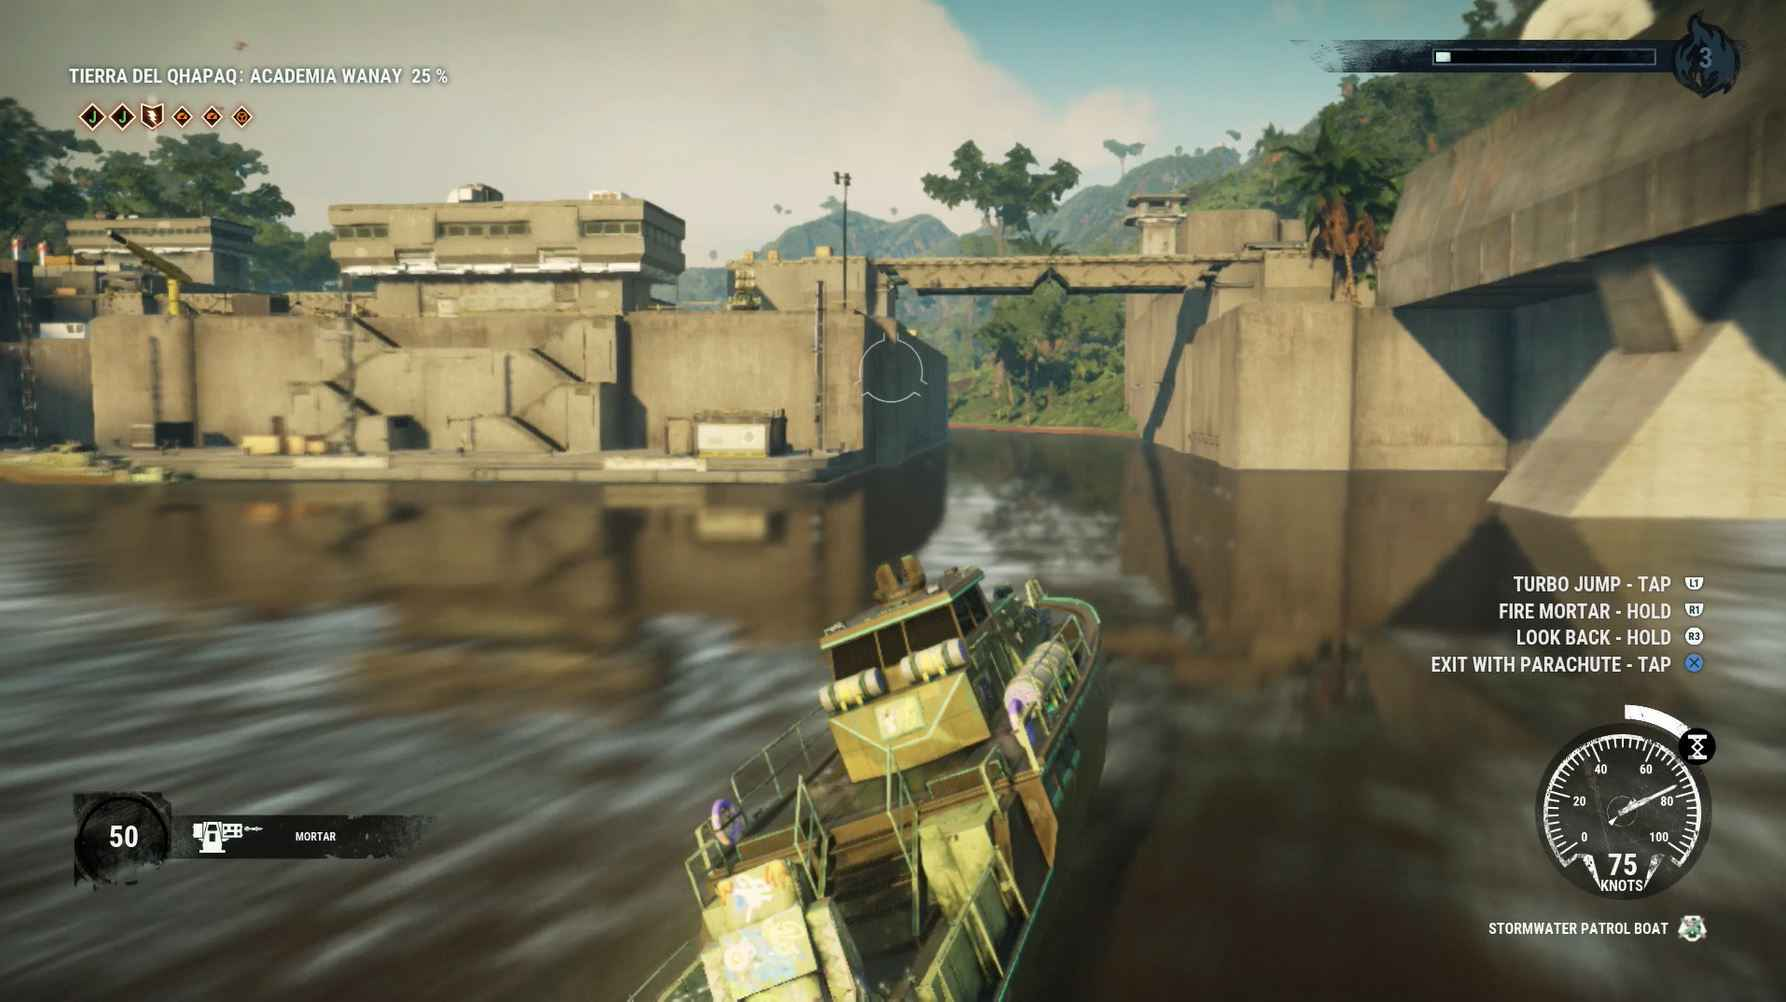 Just Cause 4 Review - Motion Blur is a big issue.